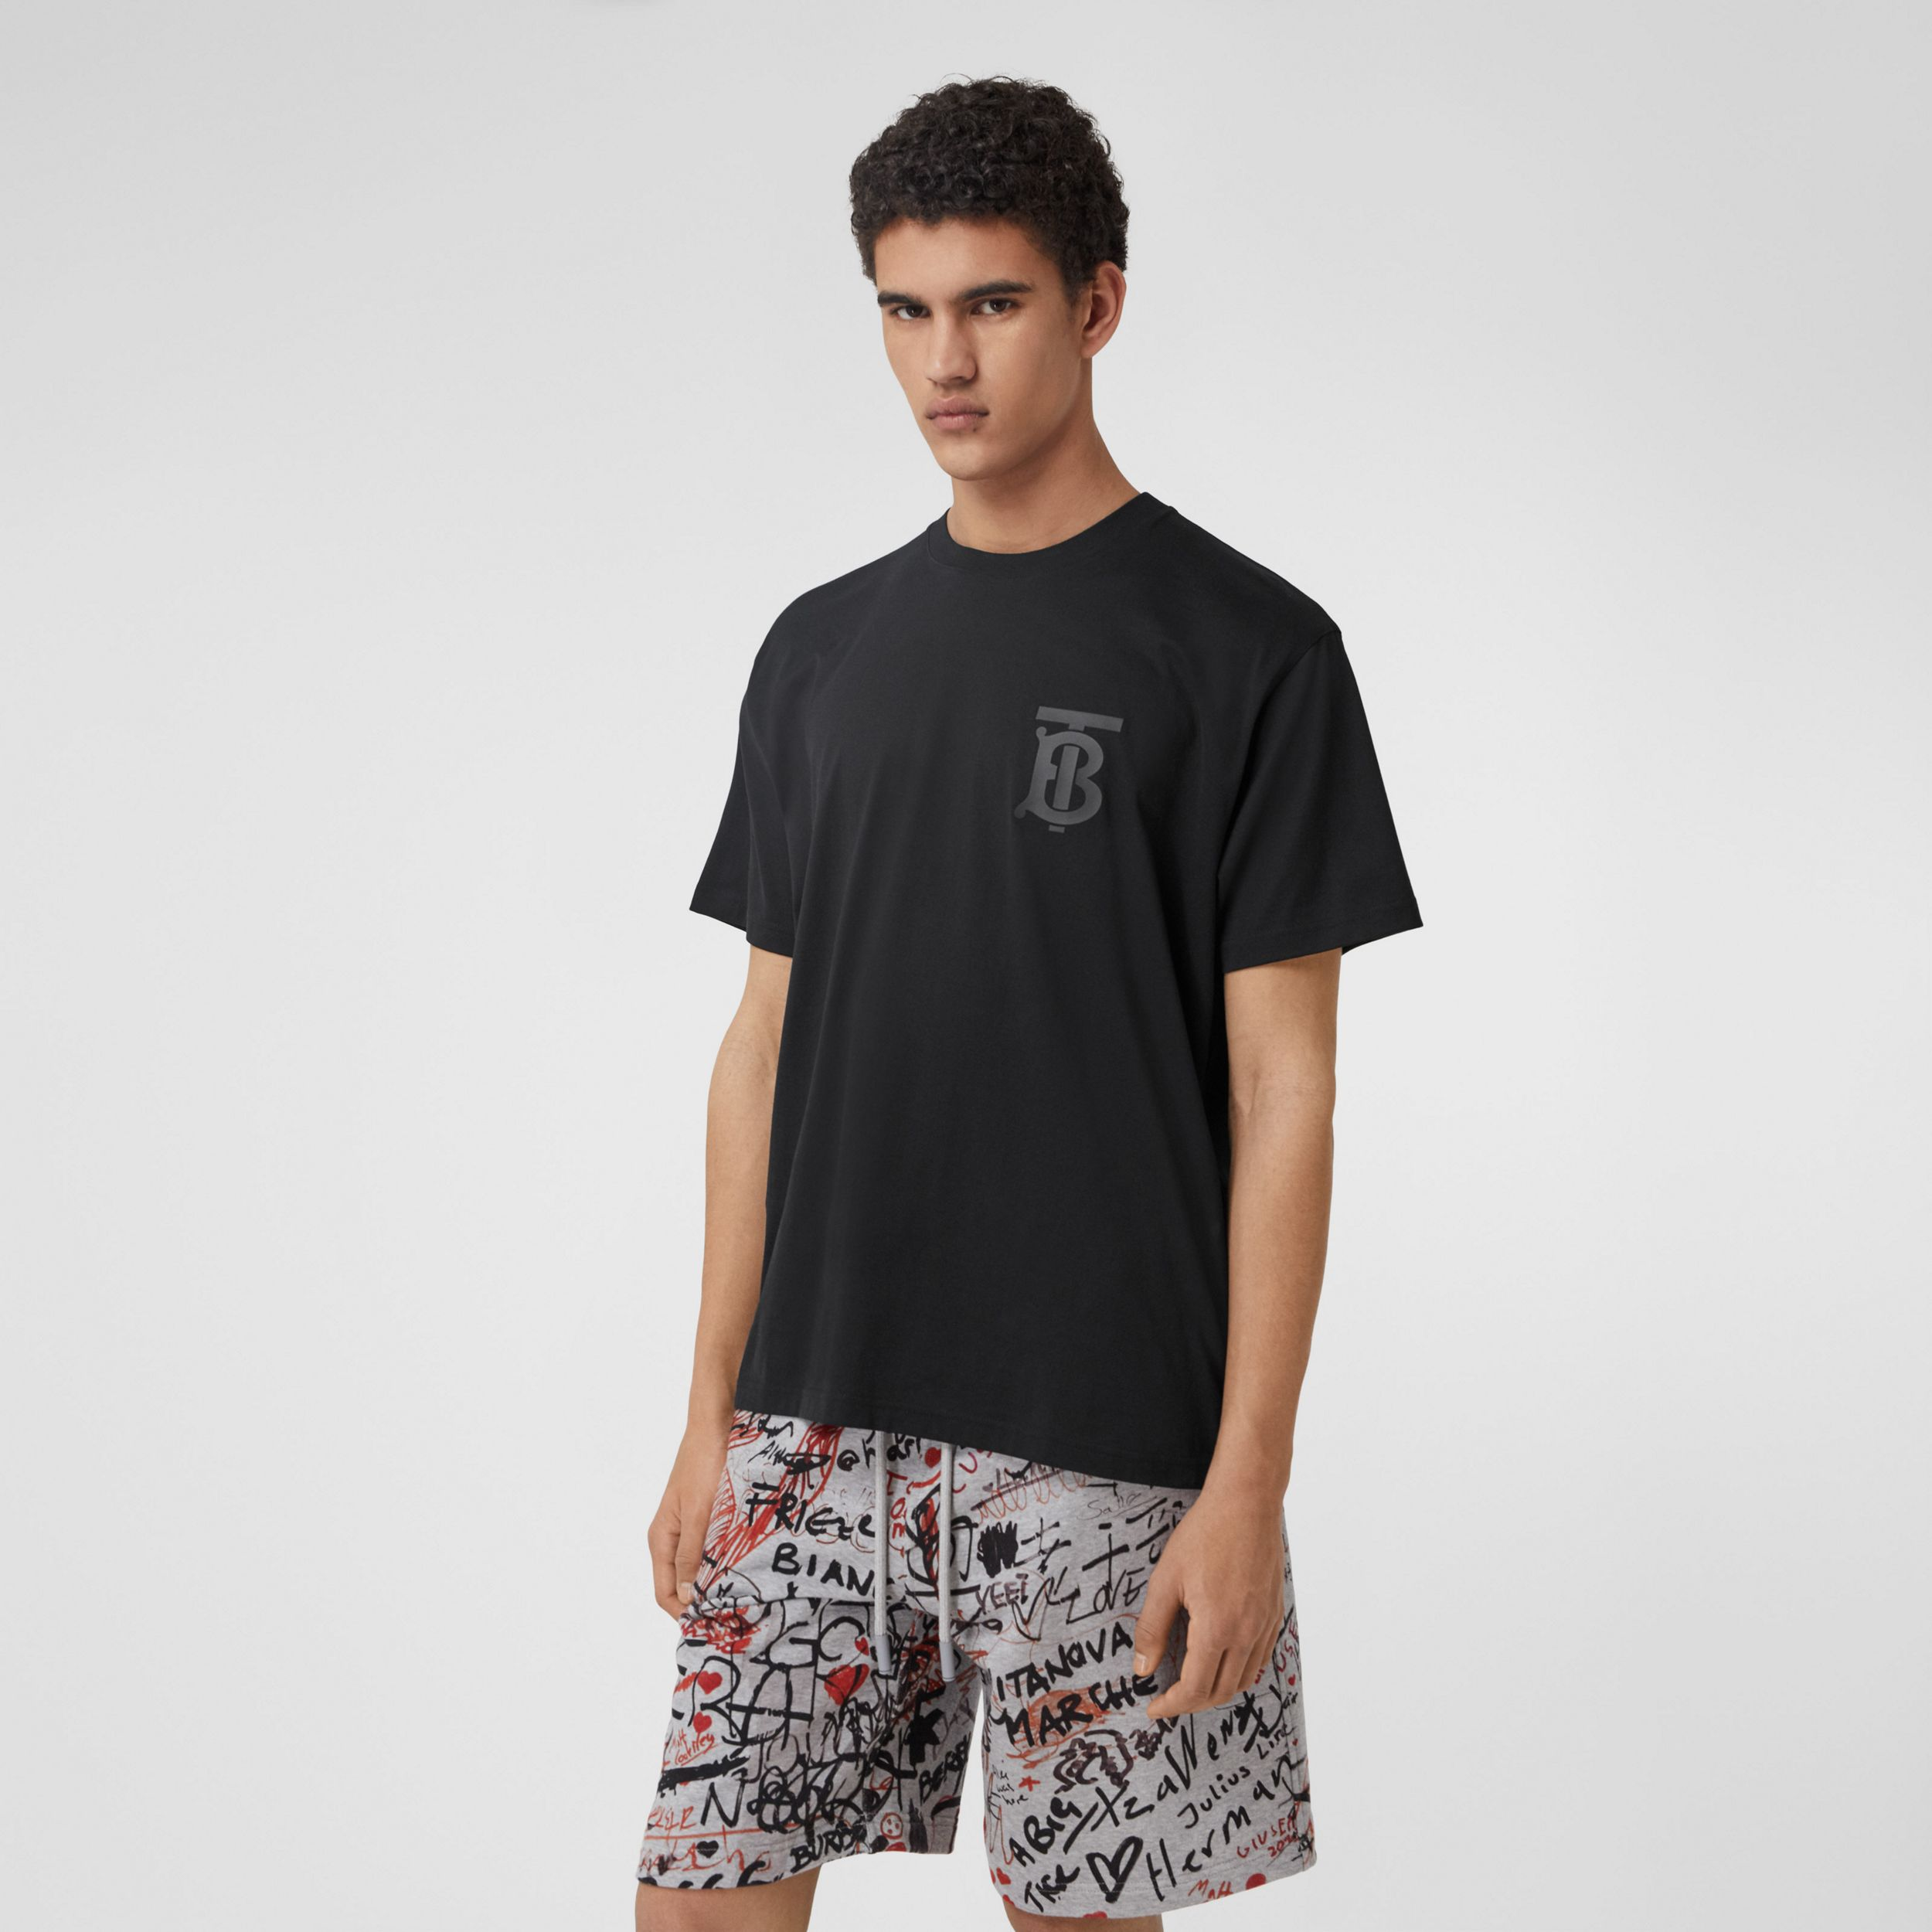 Monogram Motif Cotton Oversized T-shirt in Black - Men | Burberry - 1